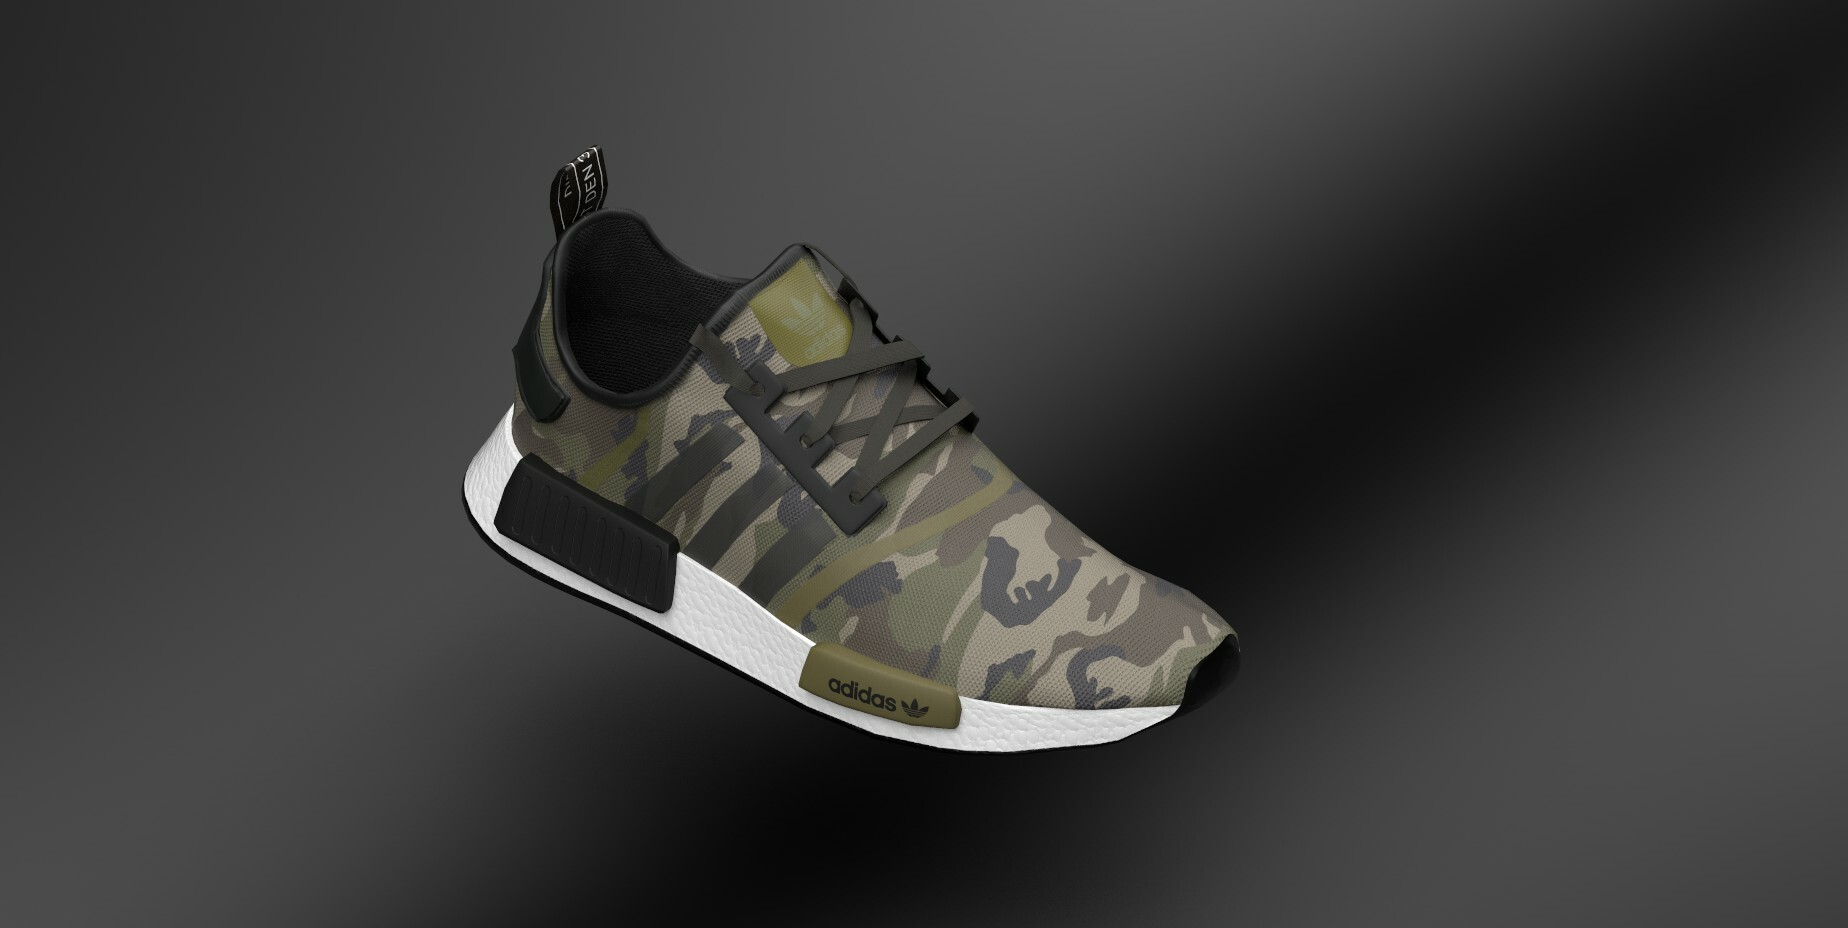 Adidas Shoe, low poly model, for Champ AR project.